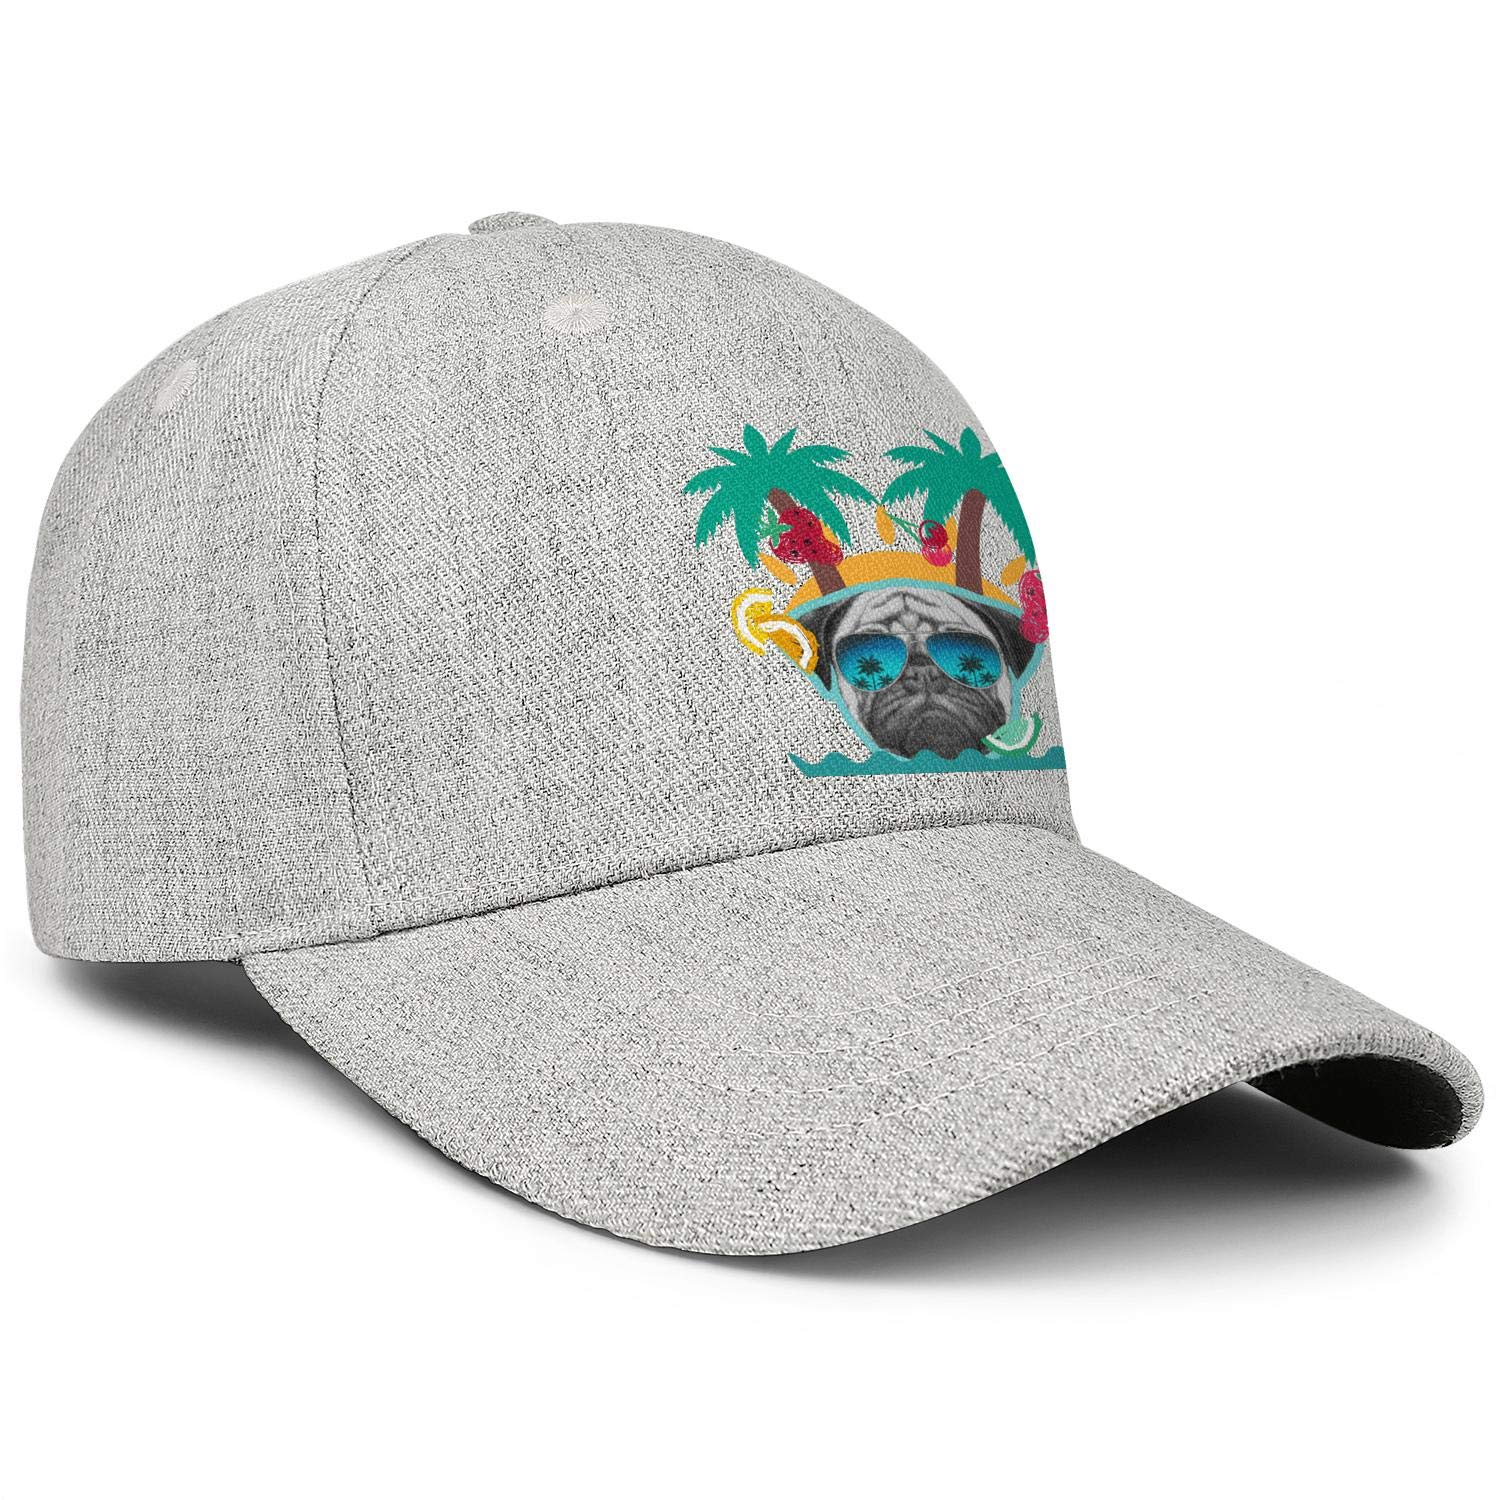 Trendy Apparel Shop Durable Adjustable Floatable Summer Visor Hat with Palmtree Snap Charm